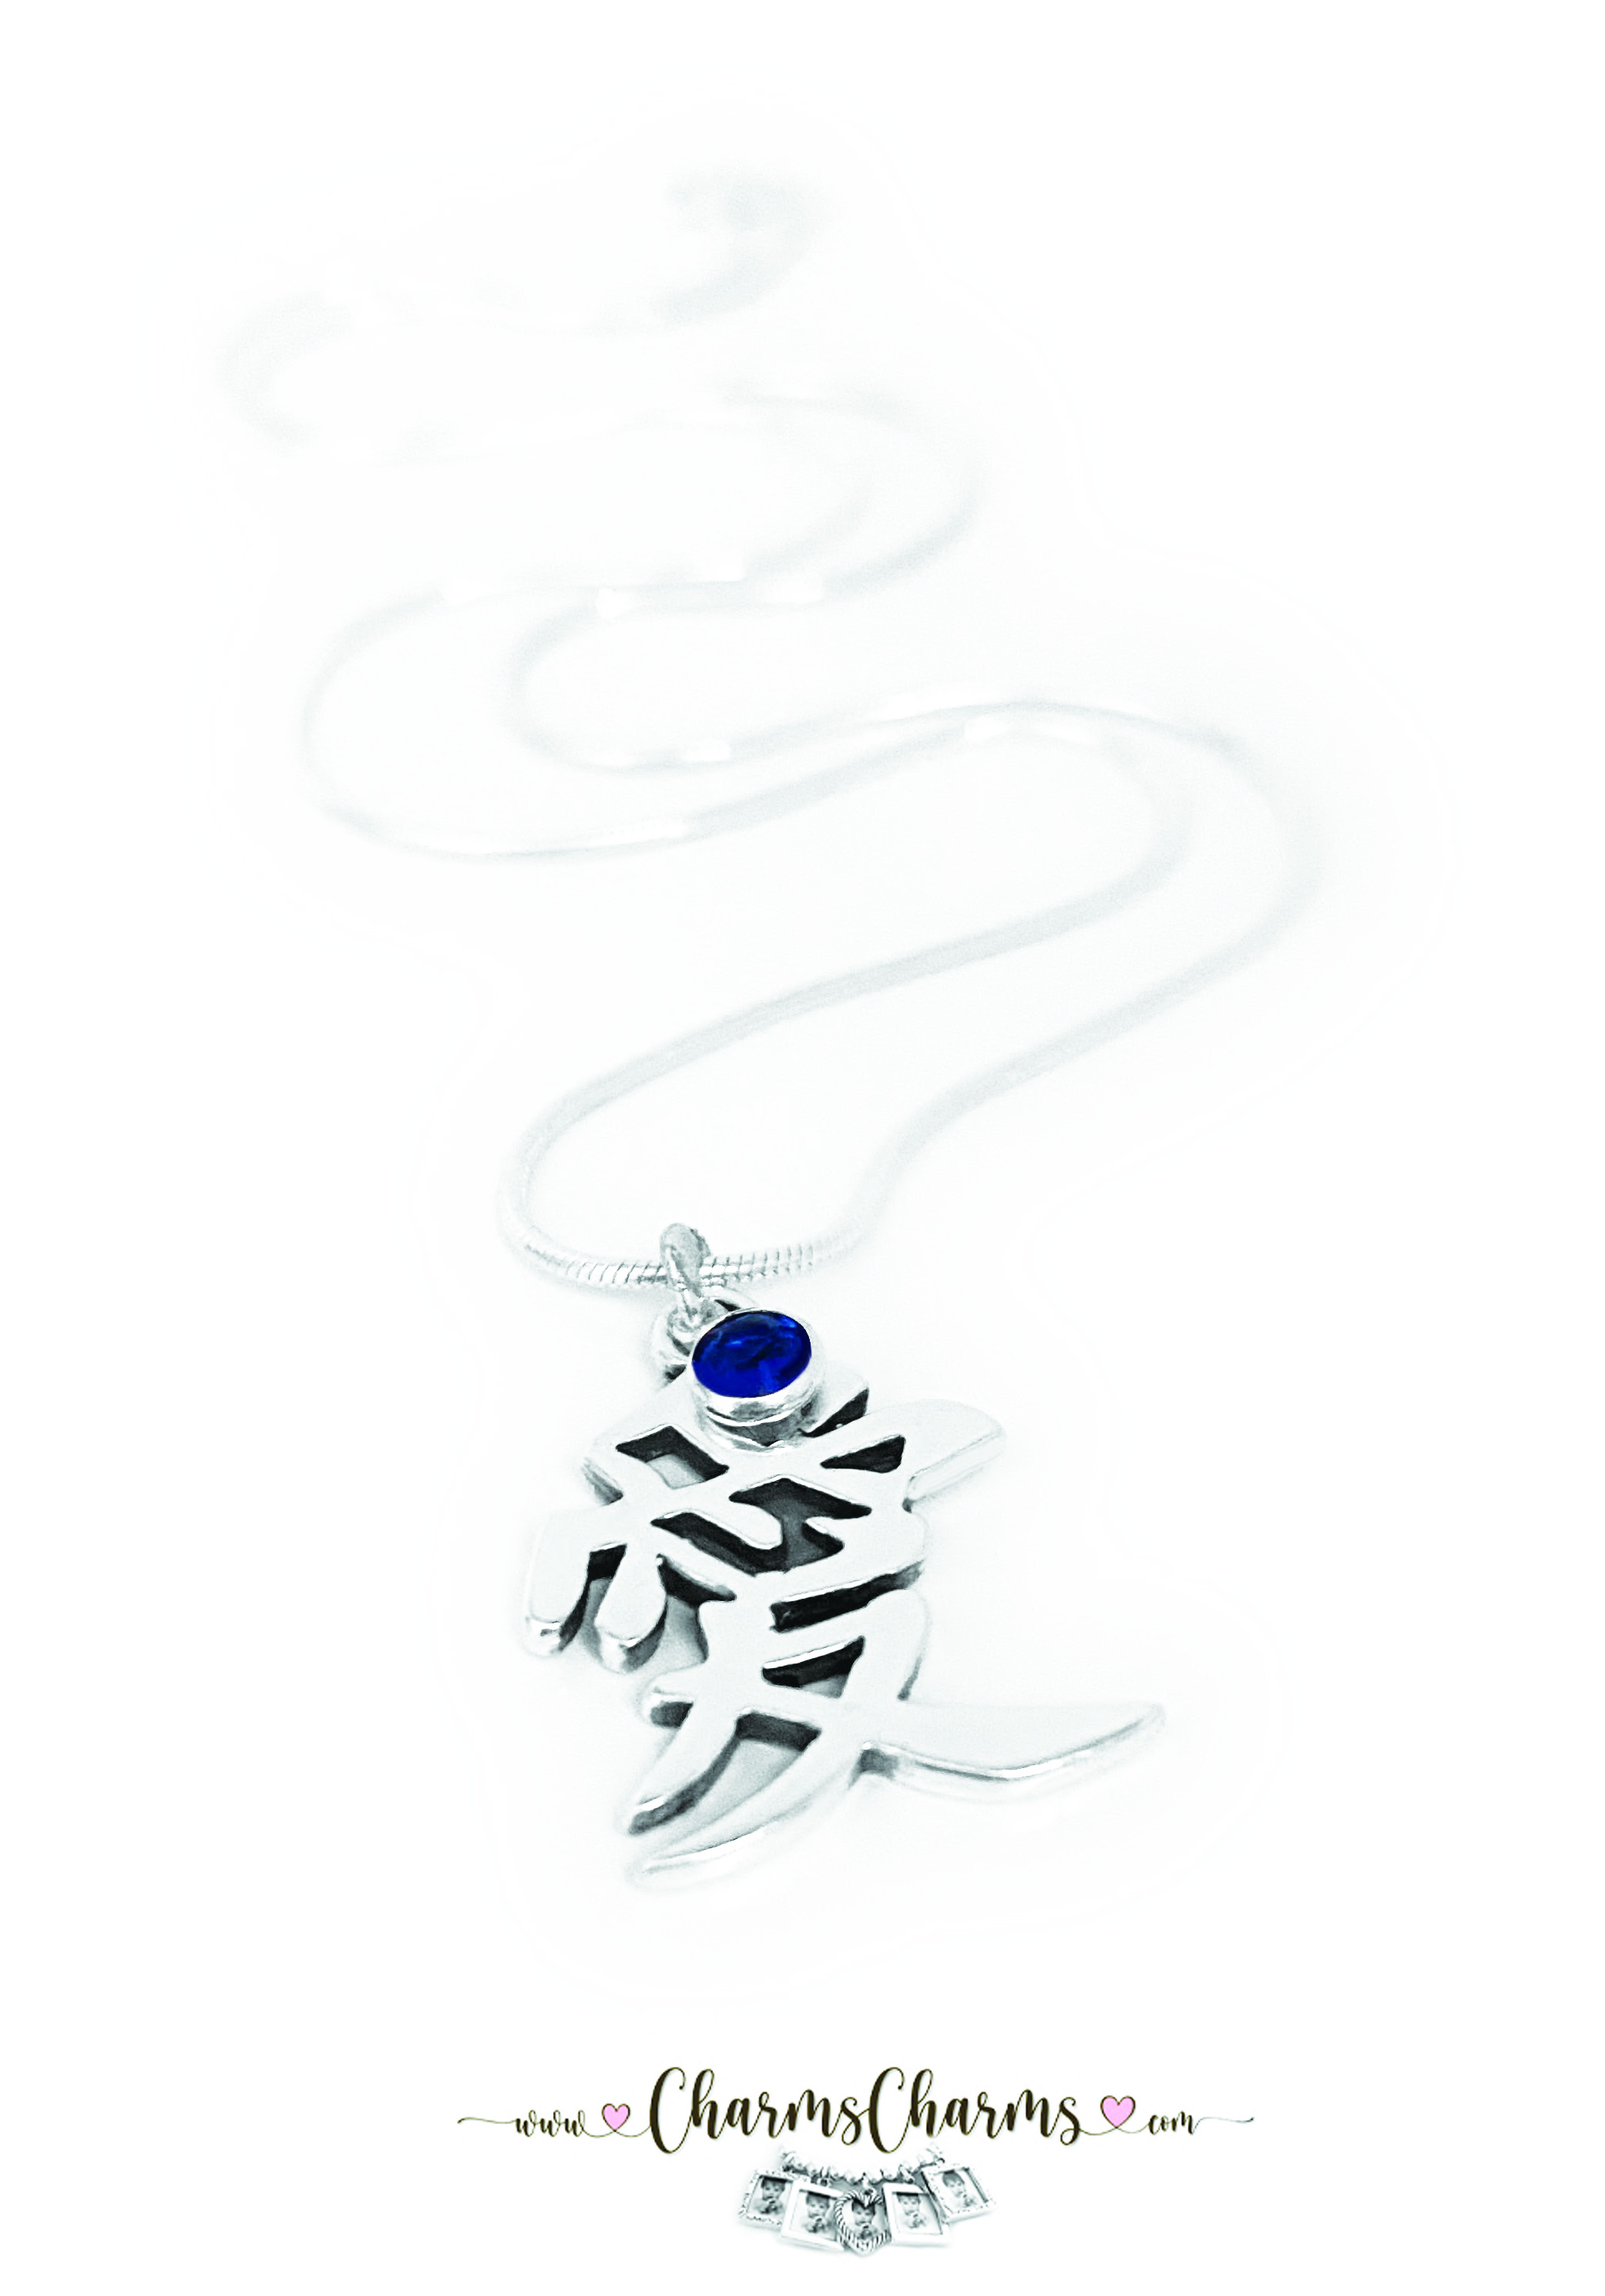 "This is a 16"" sterling silver Rolo Chain Necklace with a 4mm September or Sapphire Birthstone Charm by Swarovski."